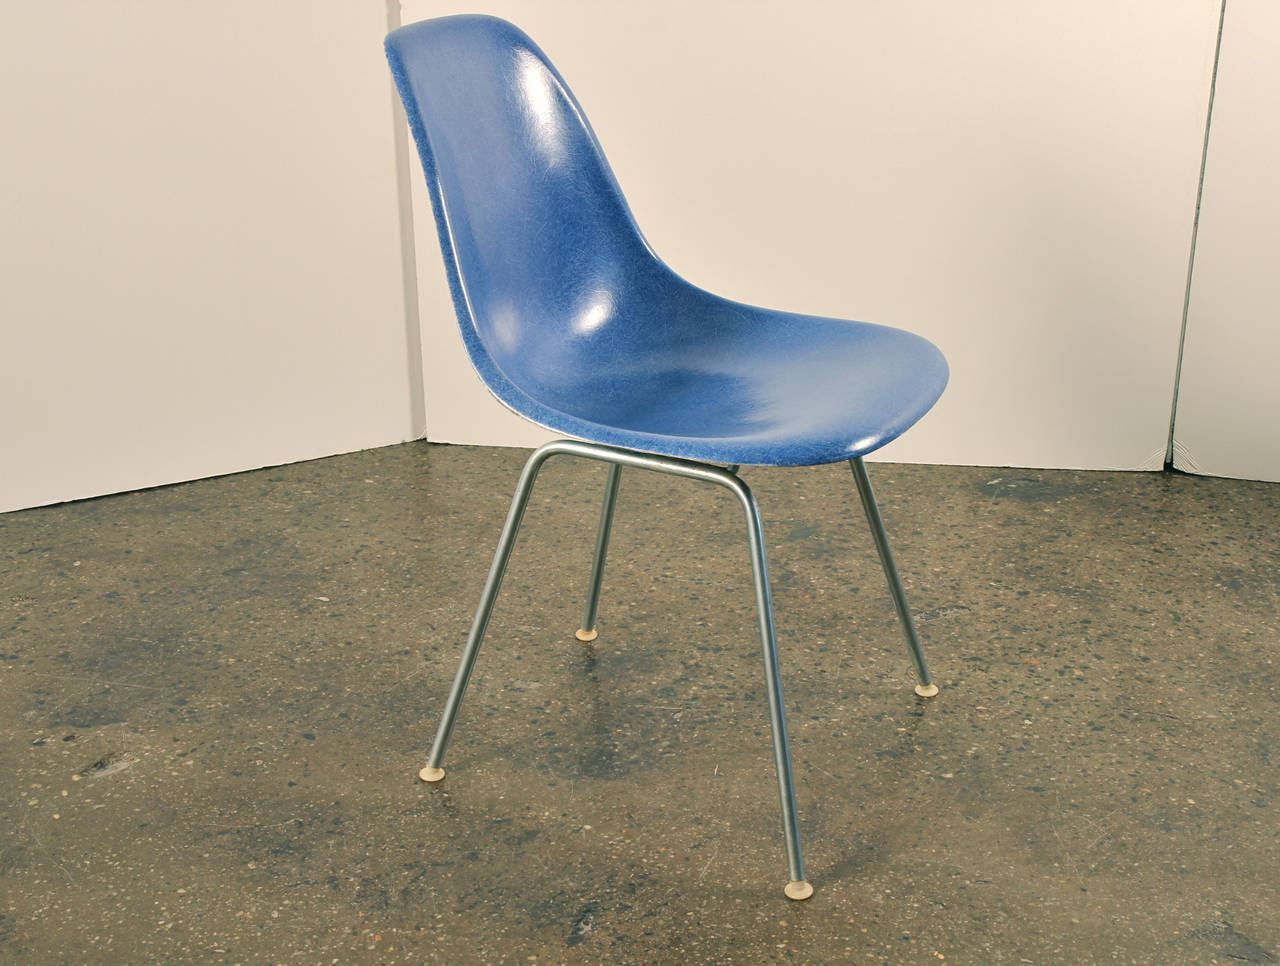 8 eames herman miller fiberglass shell chairs blue at 1stdibs. Black Bedroom Furniture Sets. Home Design Ideas